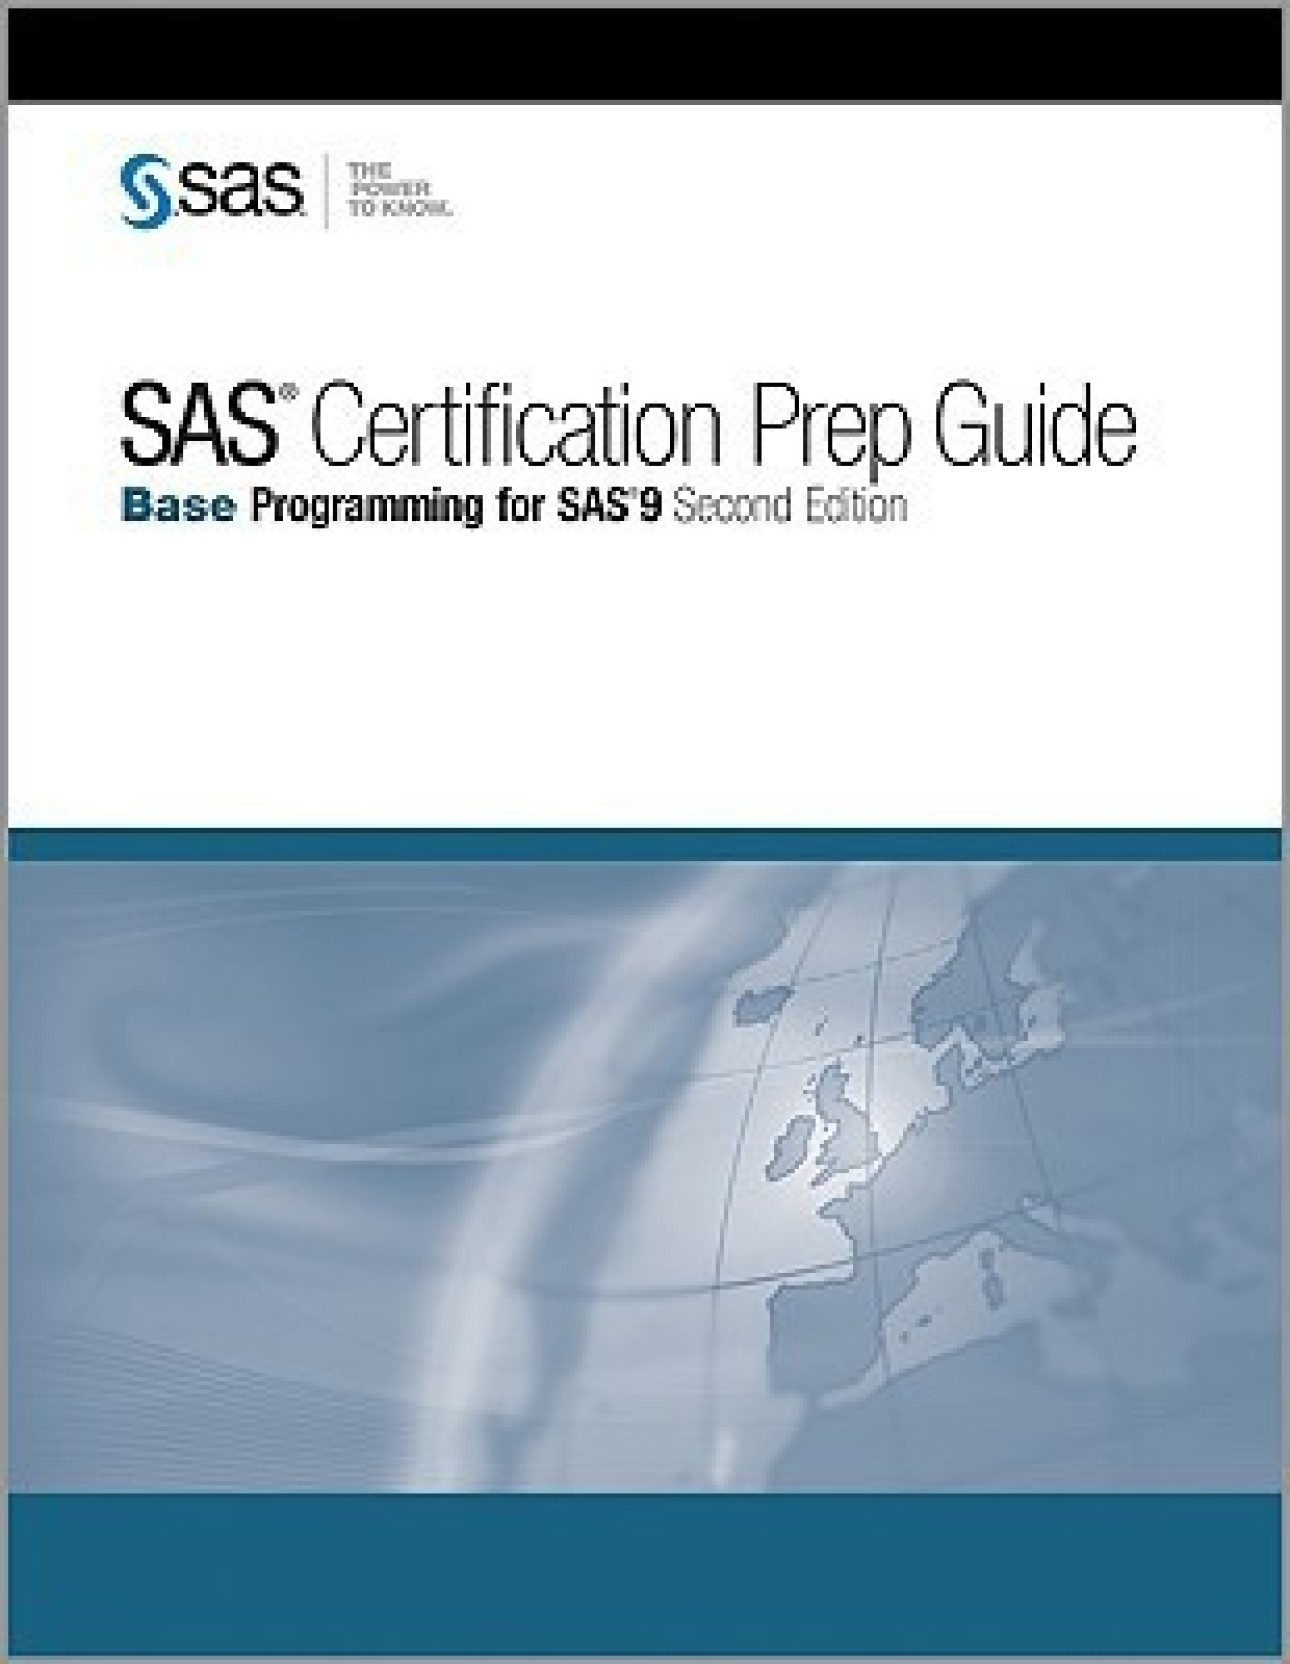 Sas Certification Prep Guide Base Programming For Sas 9 Second